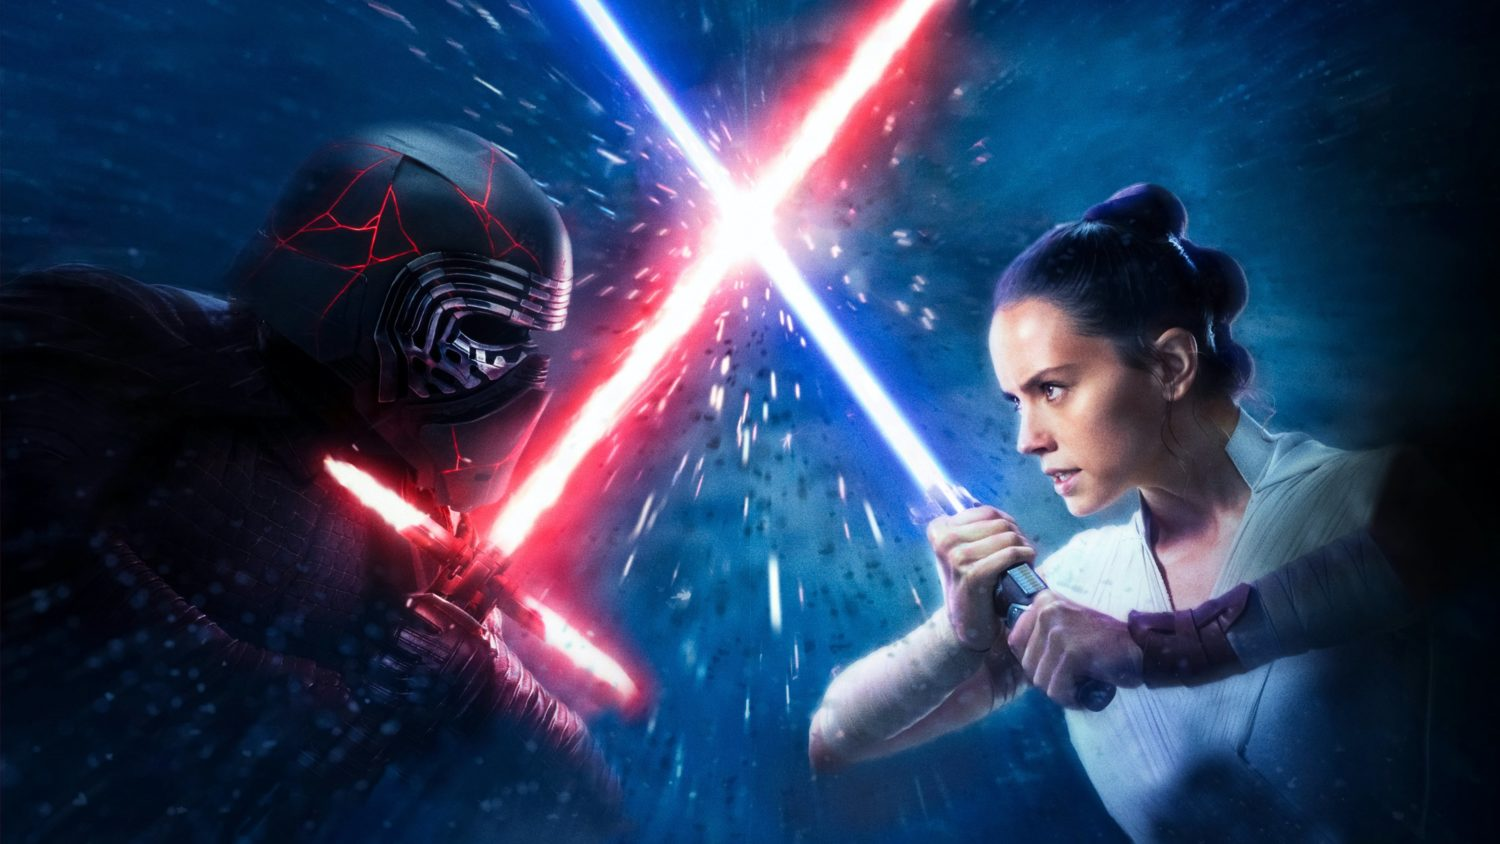 Movie Review - Star Wars: Episode IX - The Rise Of Skywalker